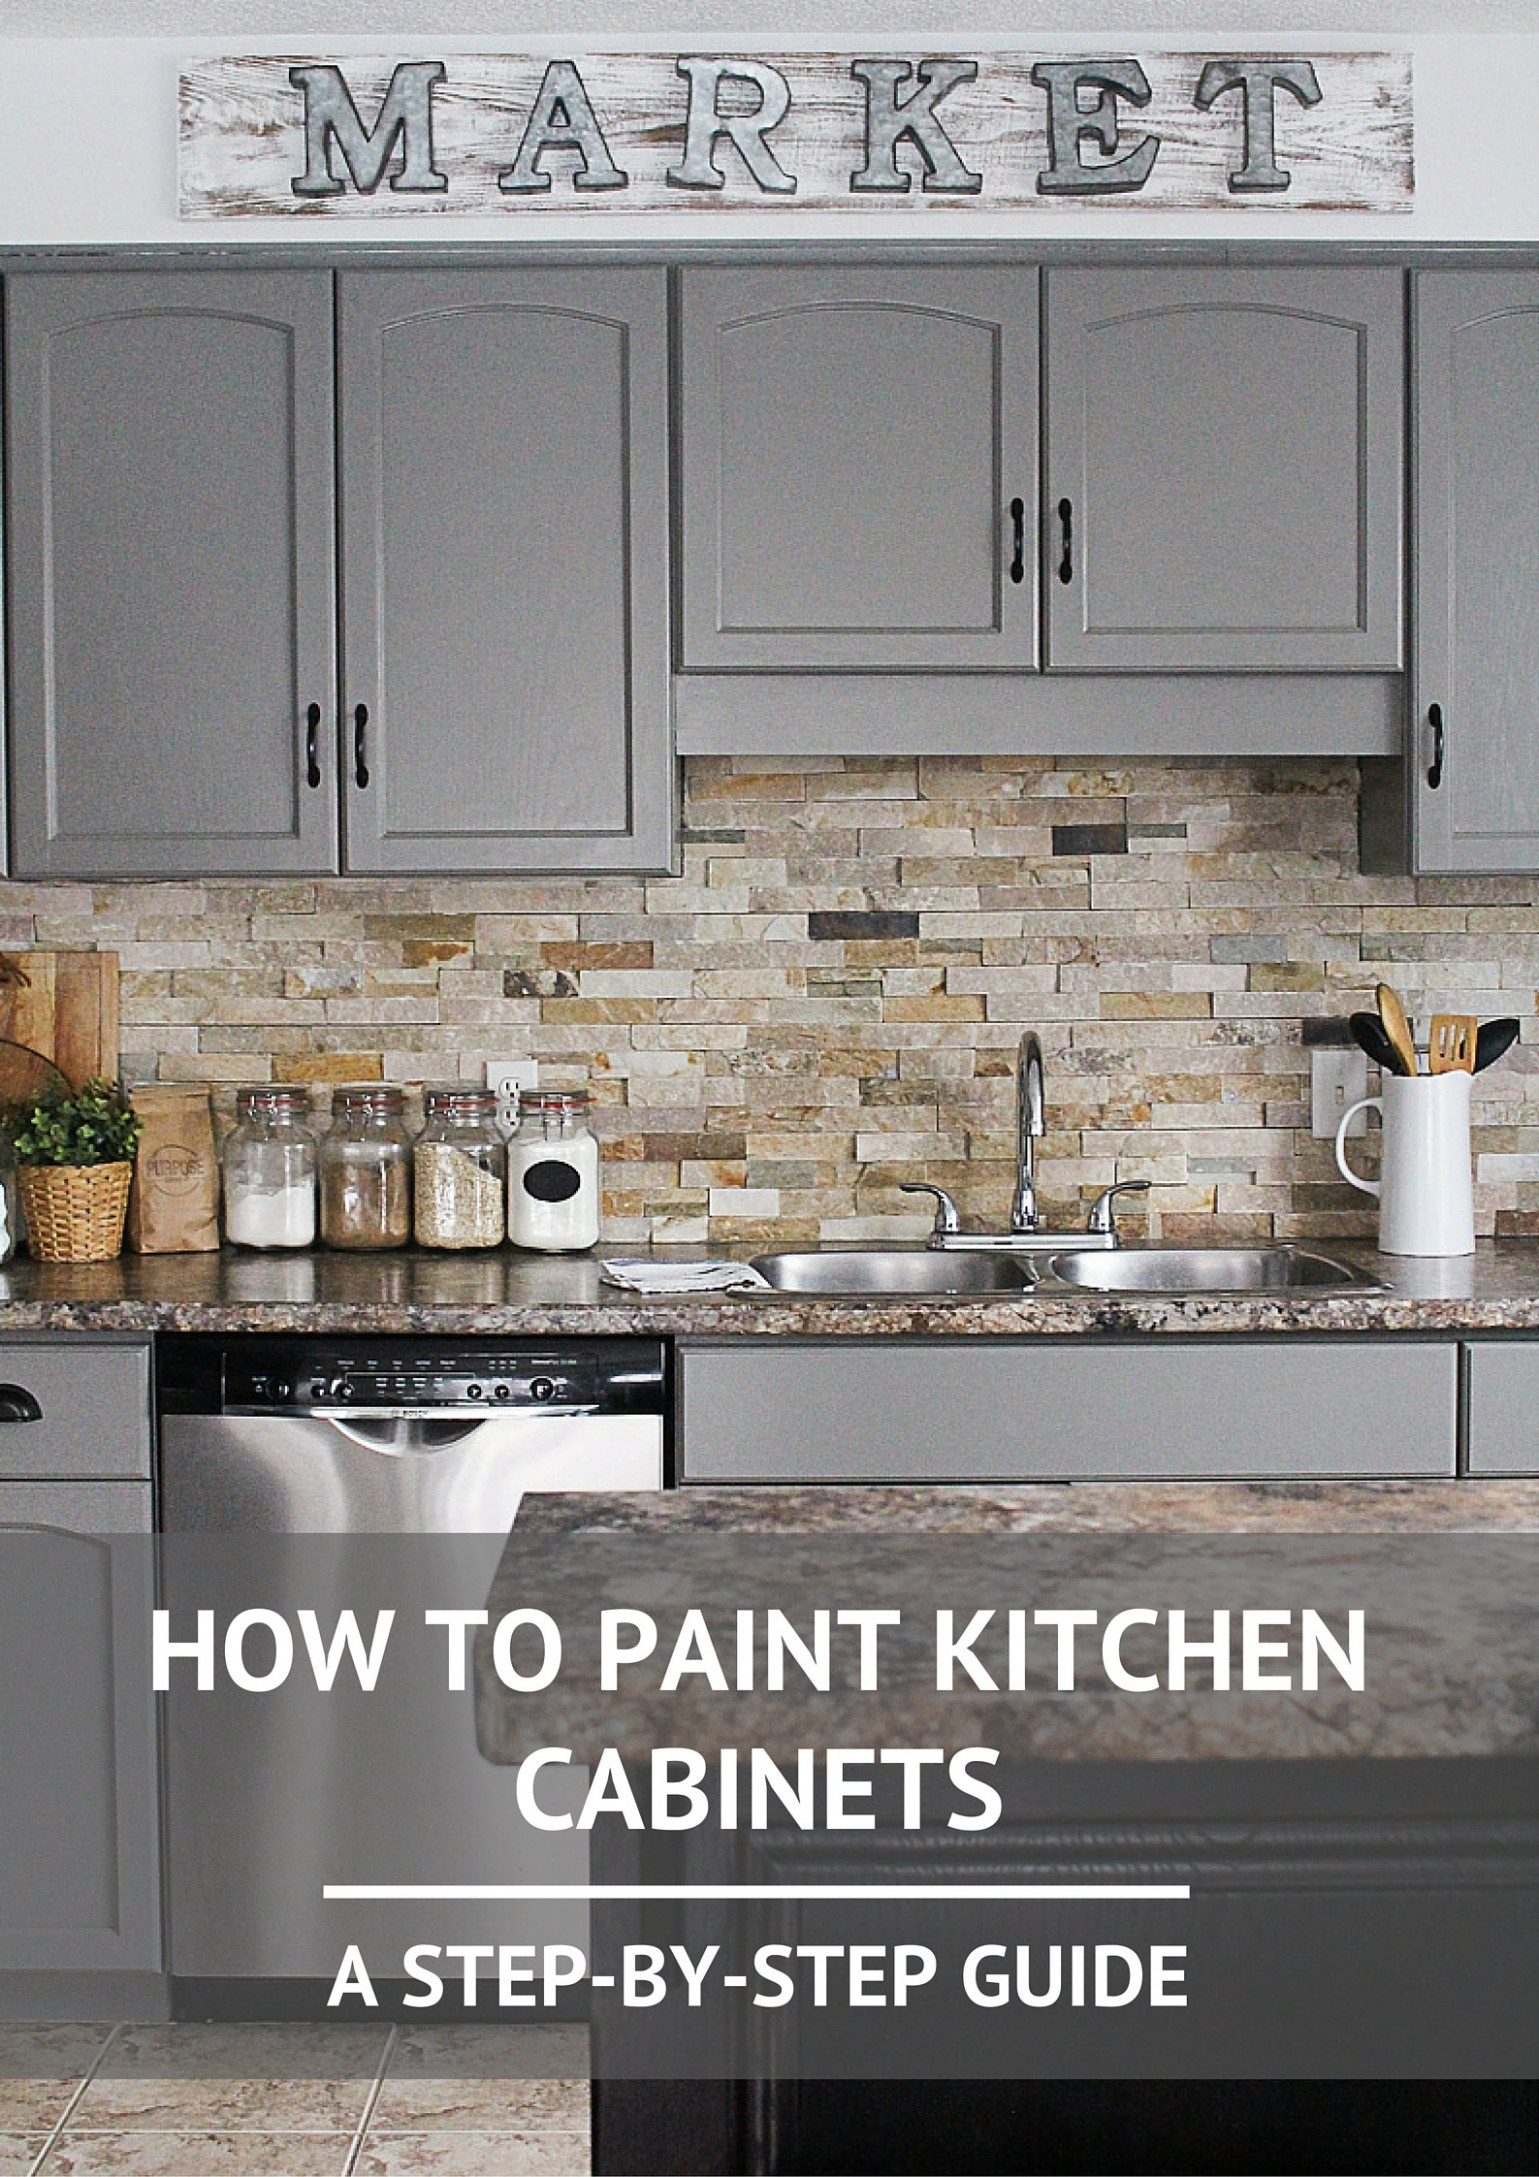 How to Paint Kitchen Cabinets - Is It Possible To Paint Kitchen Cabinets